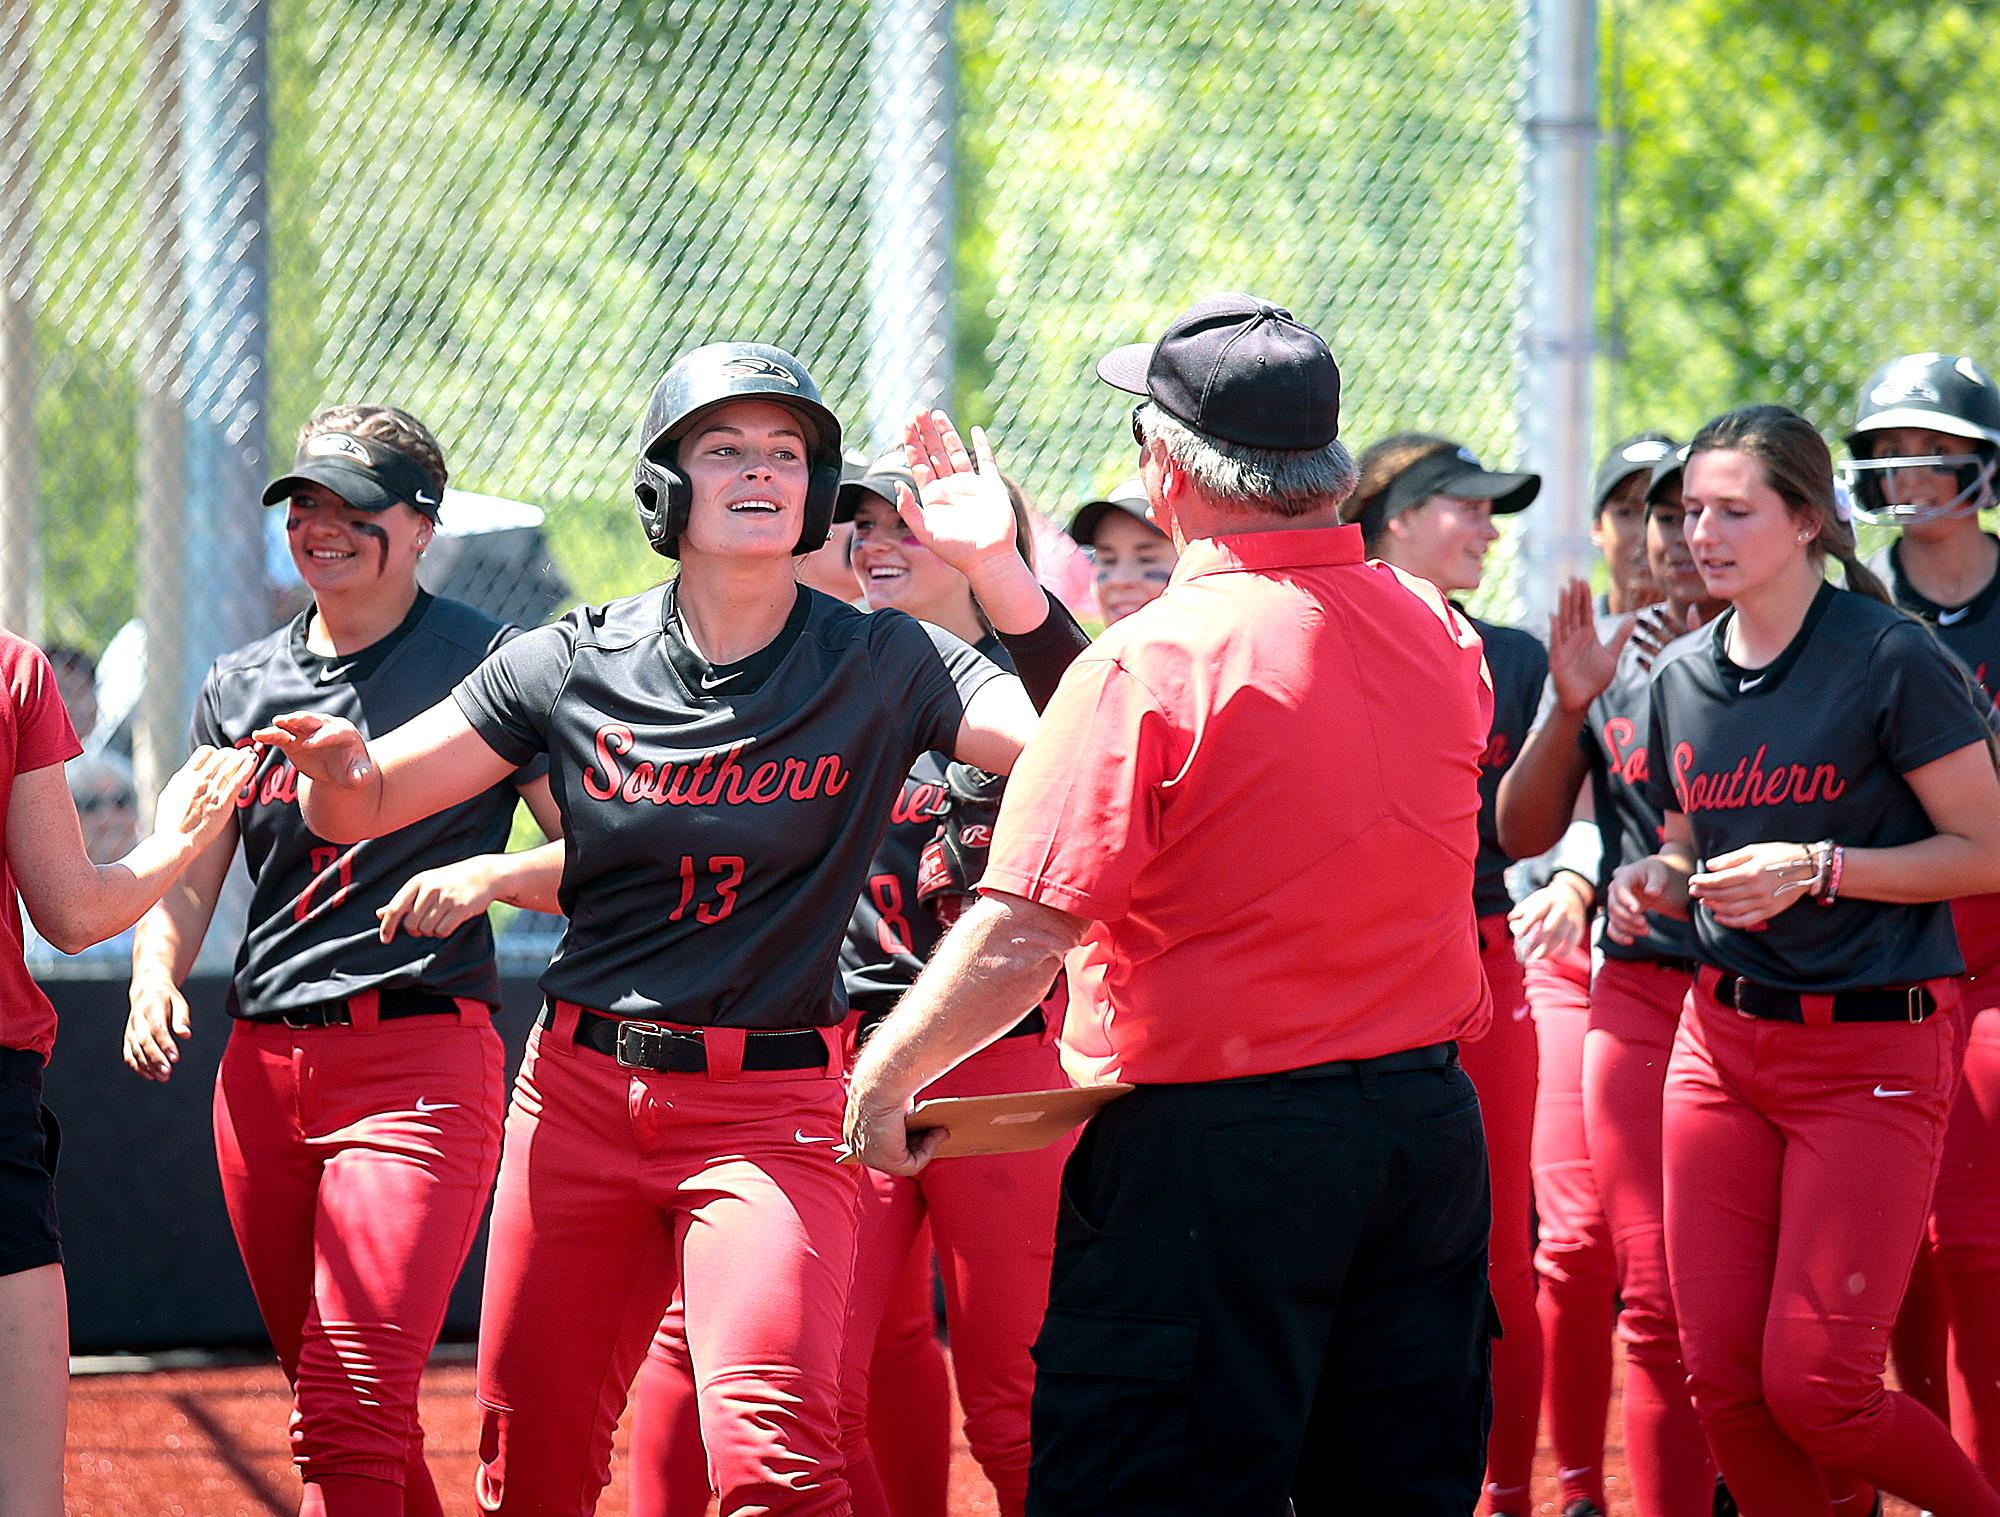 Southern Oregon University's Harlee Donovan (13) celebrates with teammates and coaches after hitting a 2-run blast in the First Inning against Simpson at US Cellular Fields on Monday.  [PHOTO BY:  LARRY STAUTH JR]